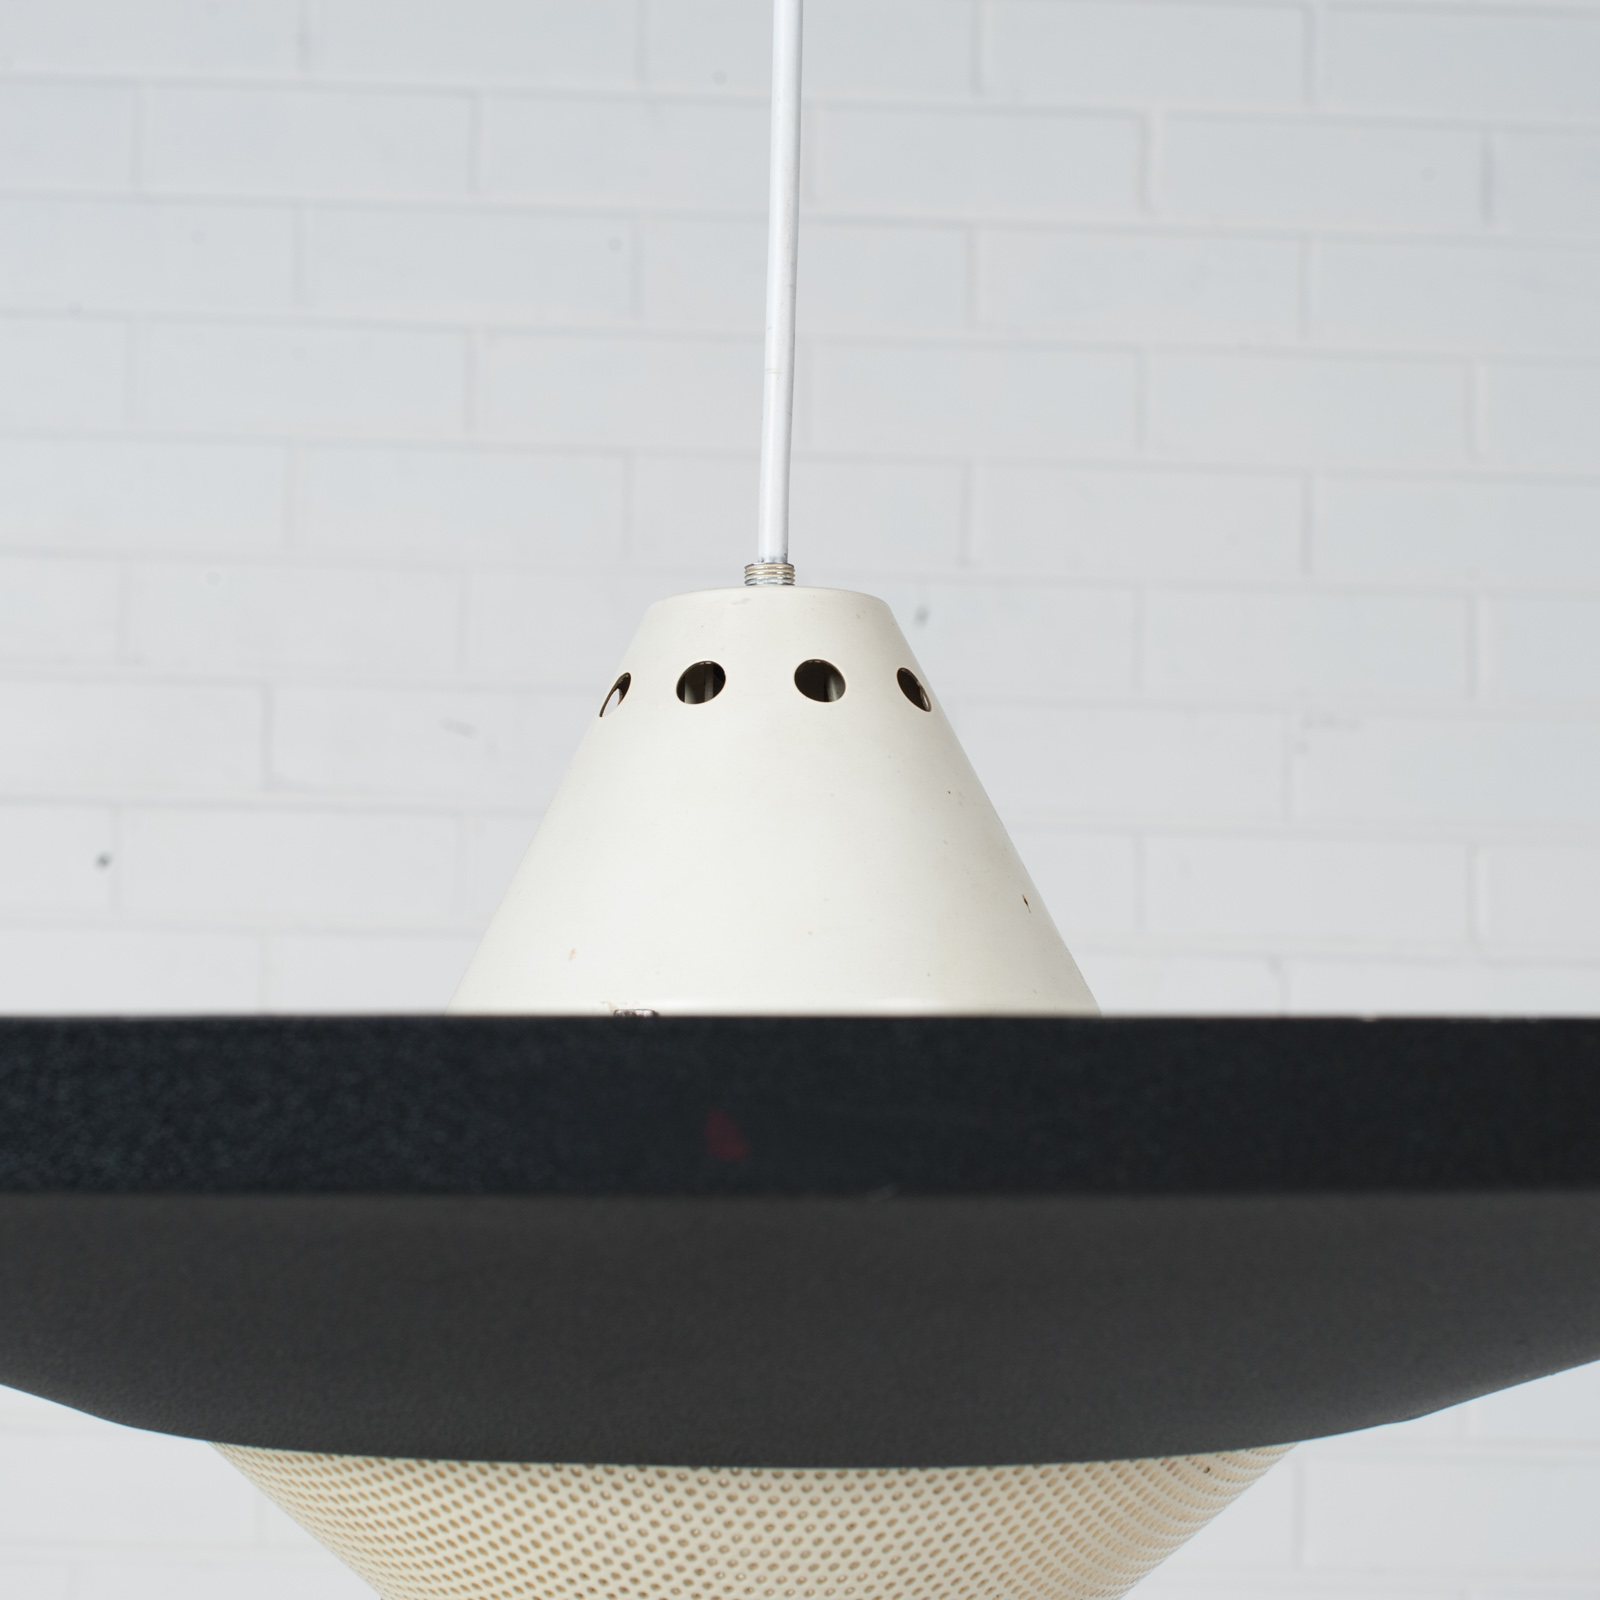 Ceiling Lamp By Louis Kalff For Philips 1960s Netherlands 07